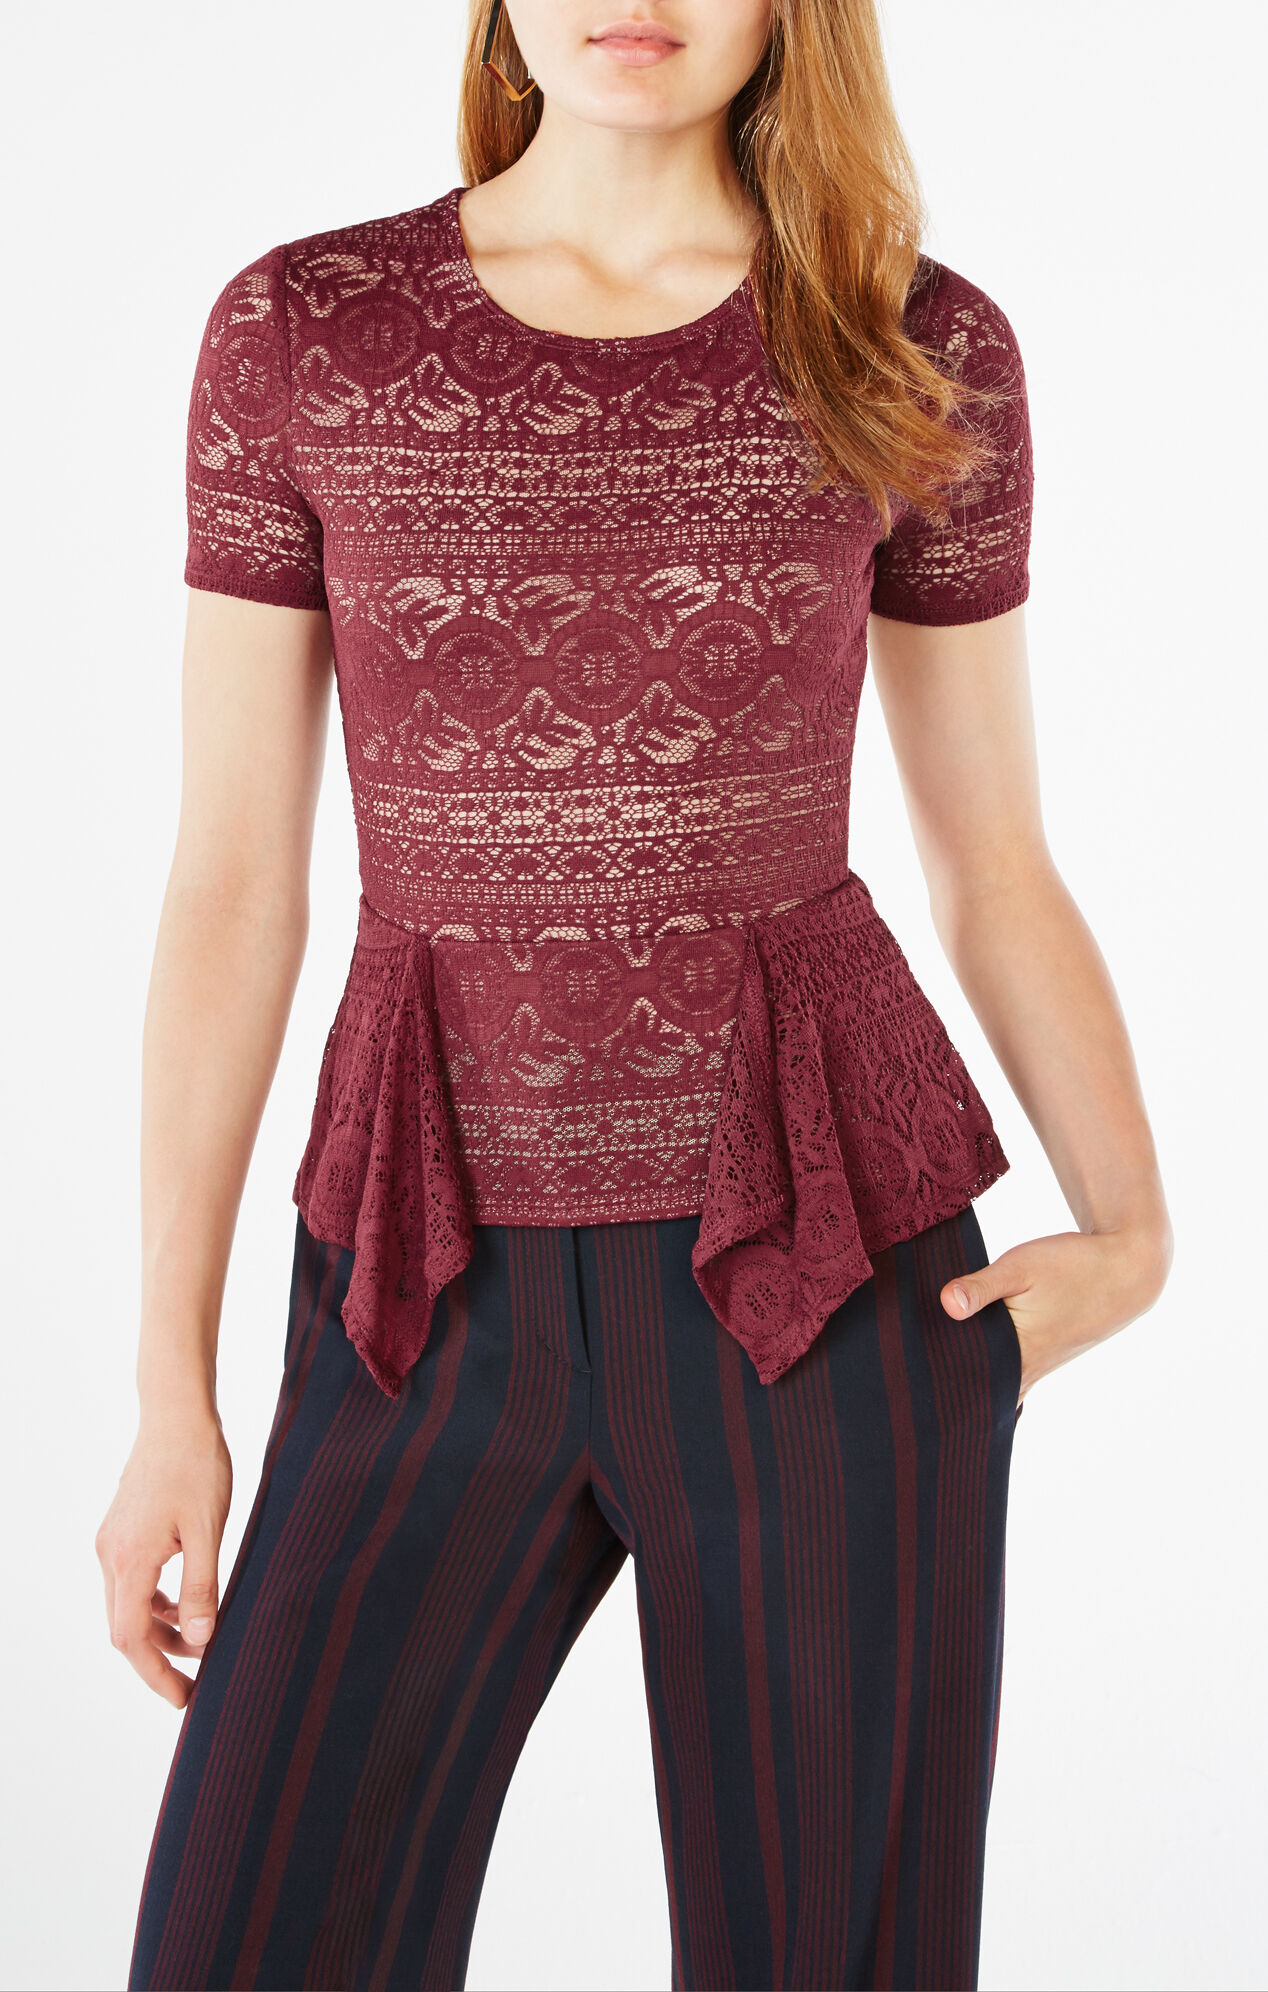 Show off your dramatic side in this deep V neck, lace peplum top with zip trim detailing.